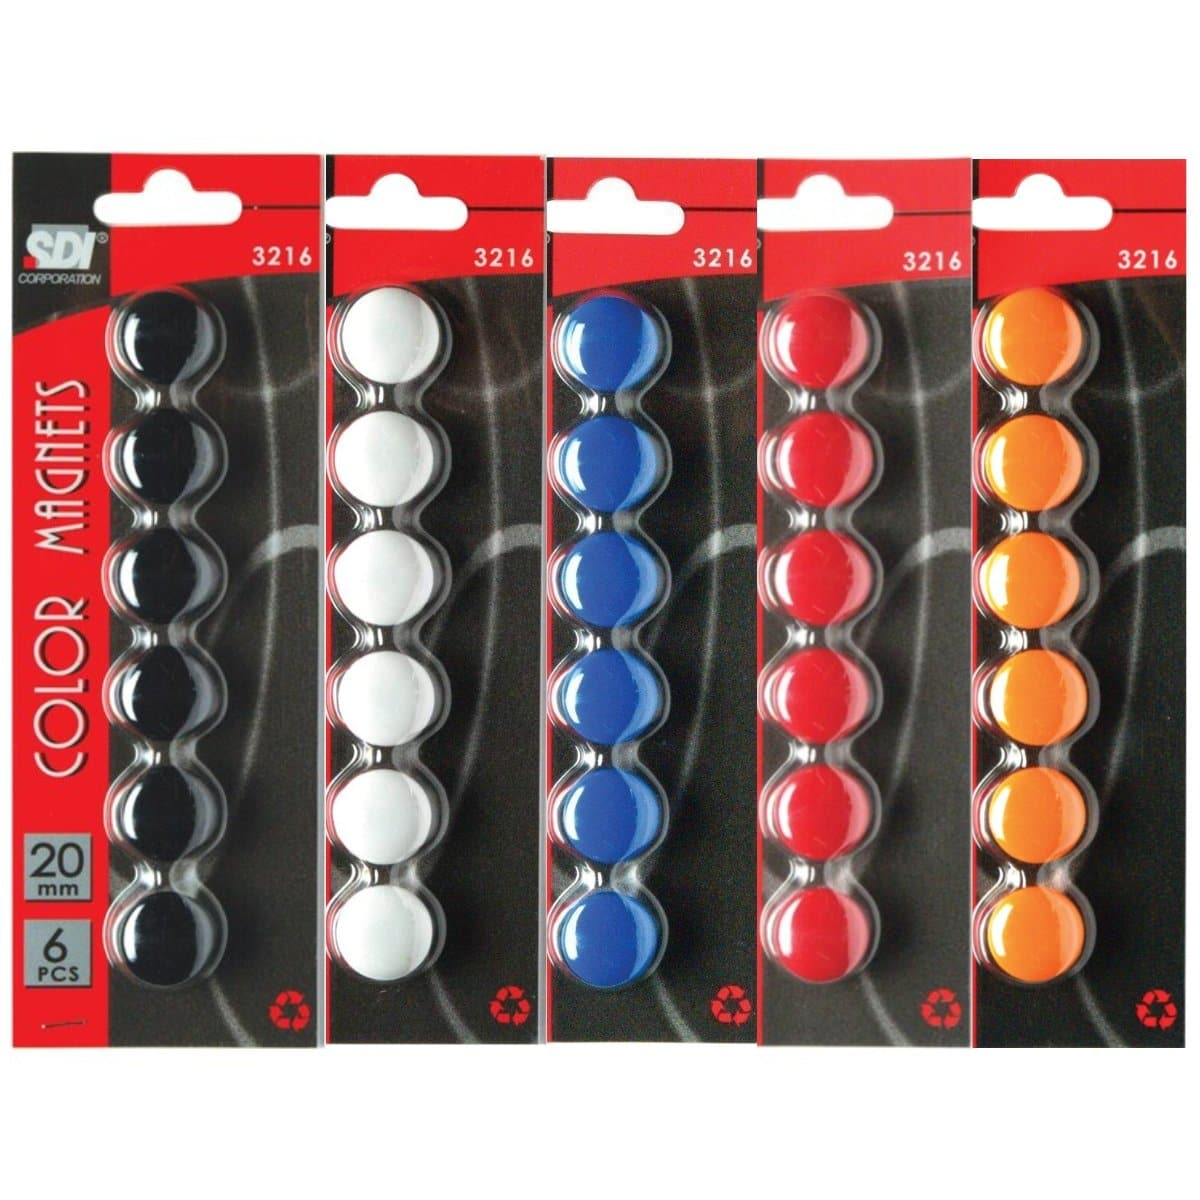 SDI Color Magnets, 20mm, 6/pack, available in Black, White, Blue, Red or Orange